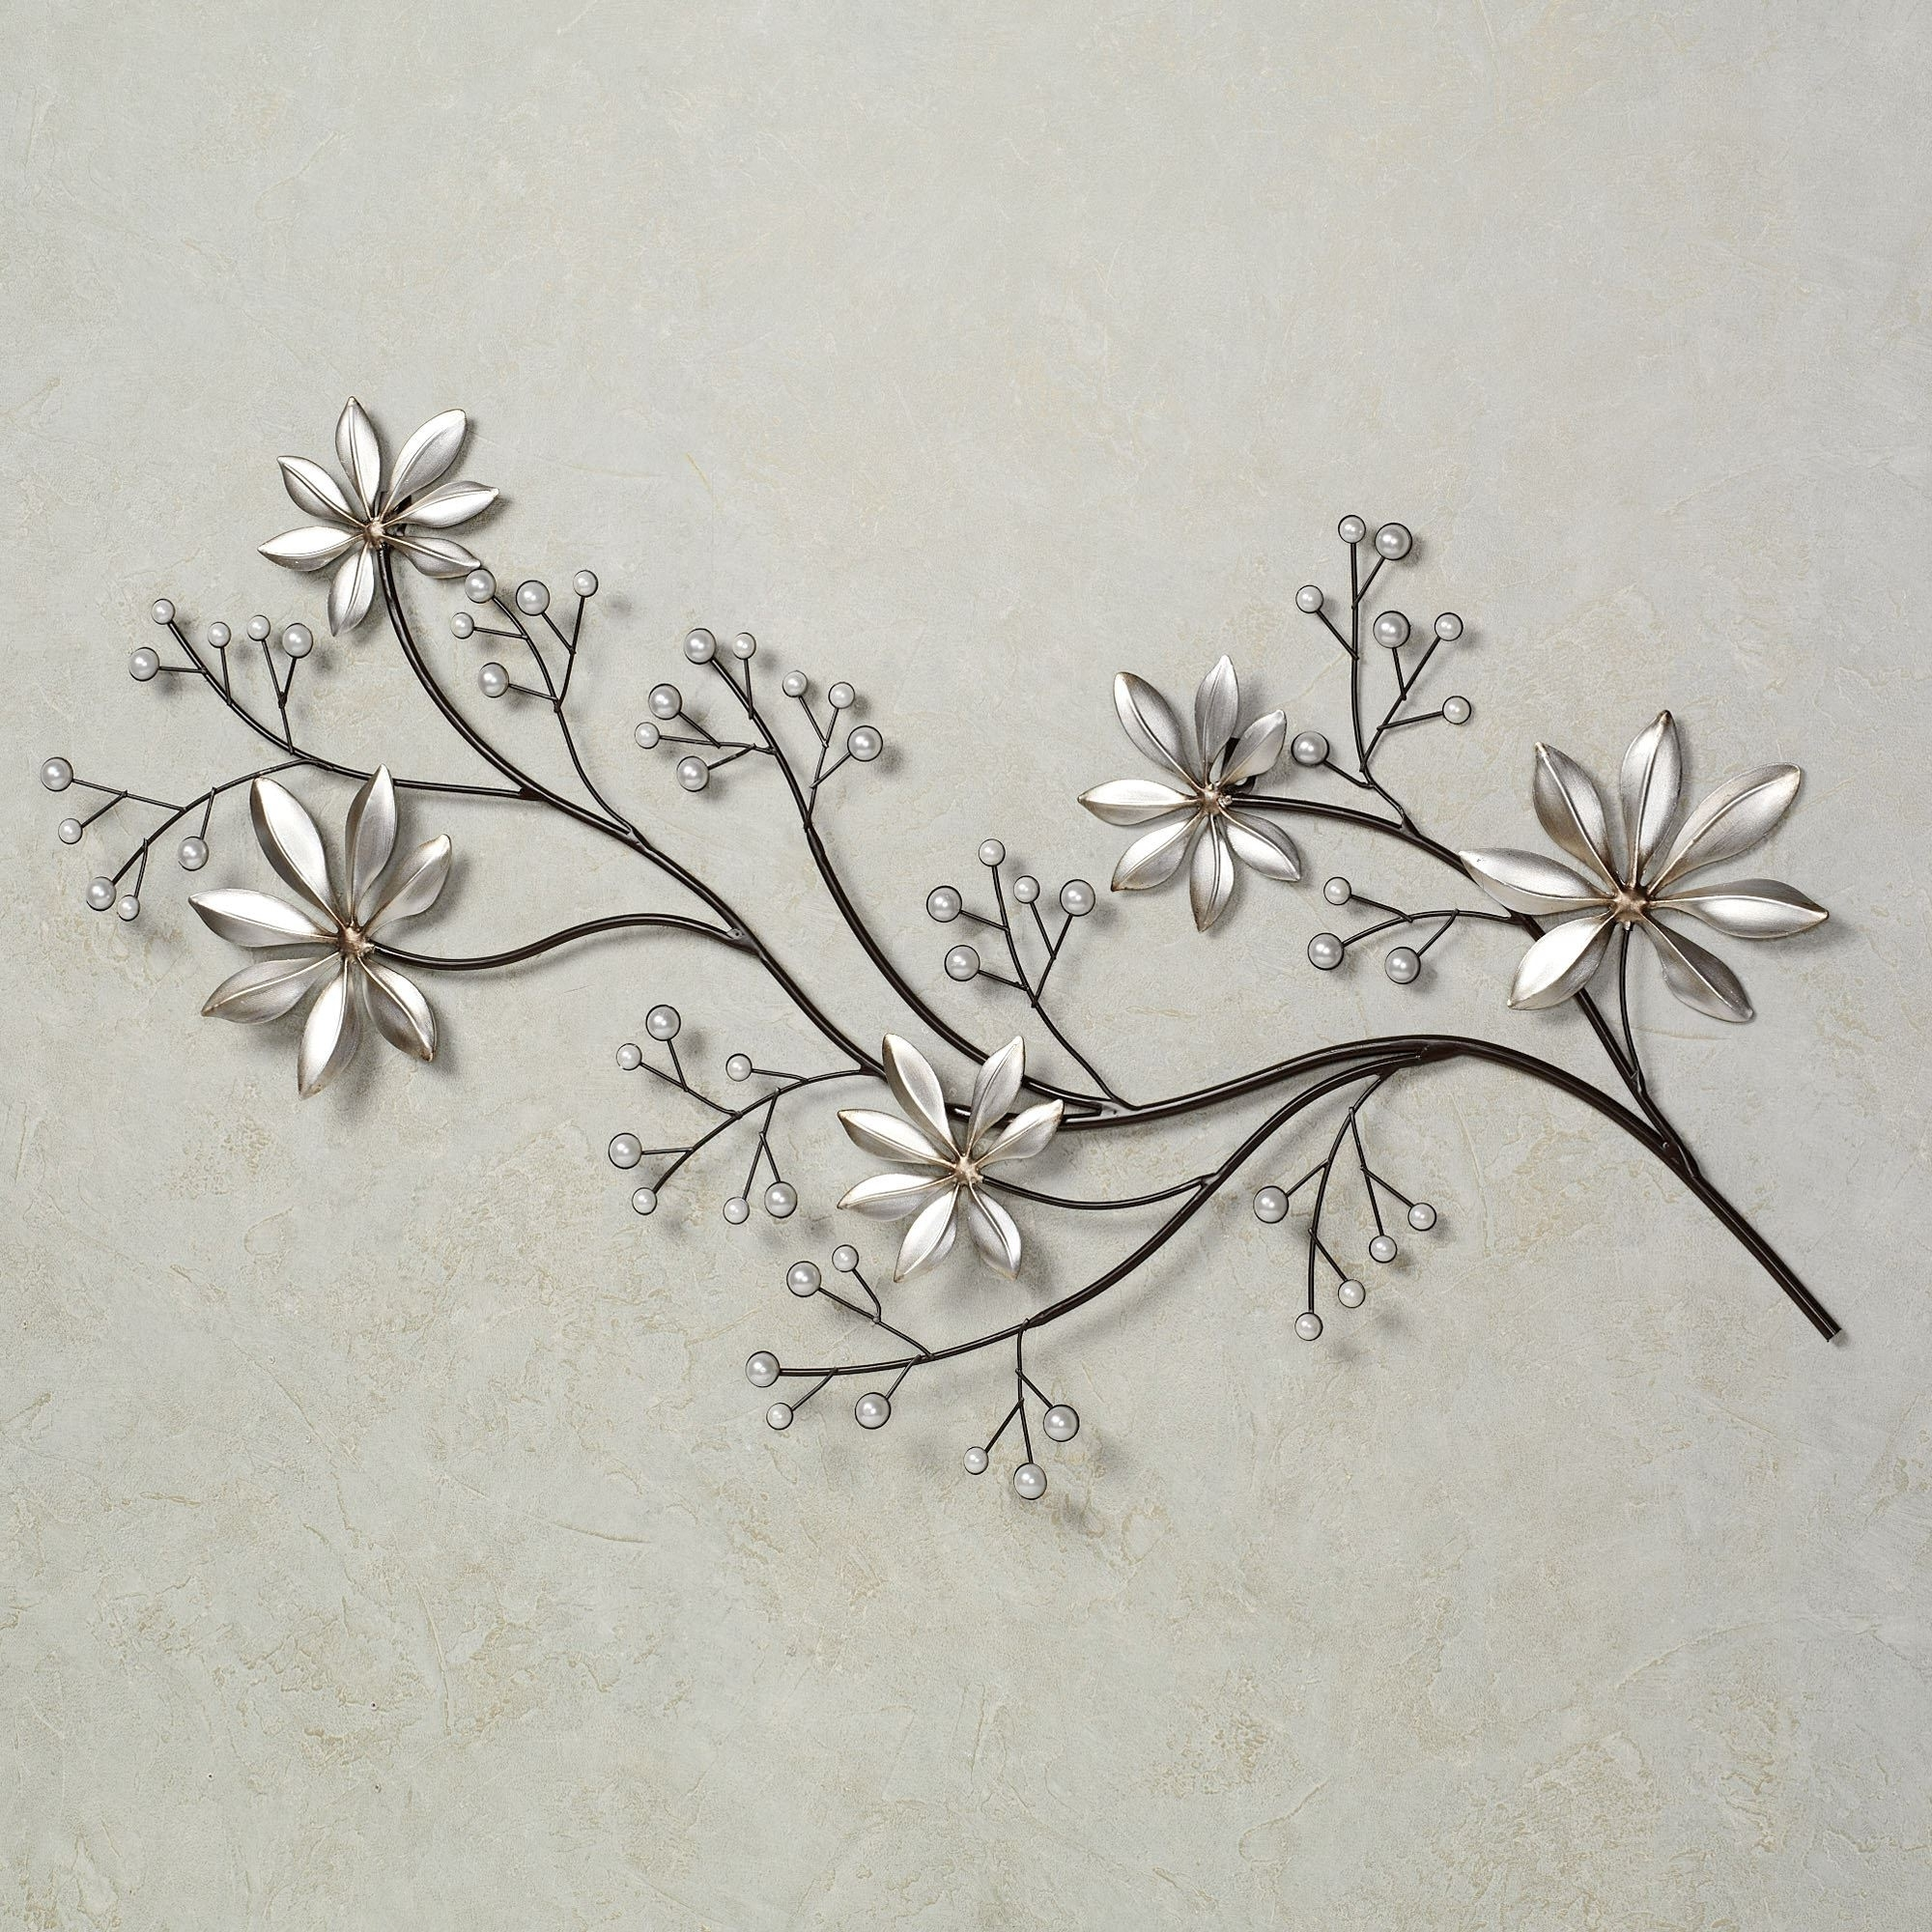 Famous Red Flower Metal Wall Art Inside Staggering Floral Metal Wall Art Sculptures Red Flower Design (View 5 of 15)